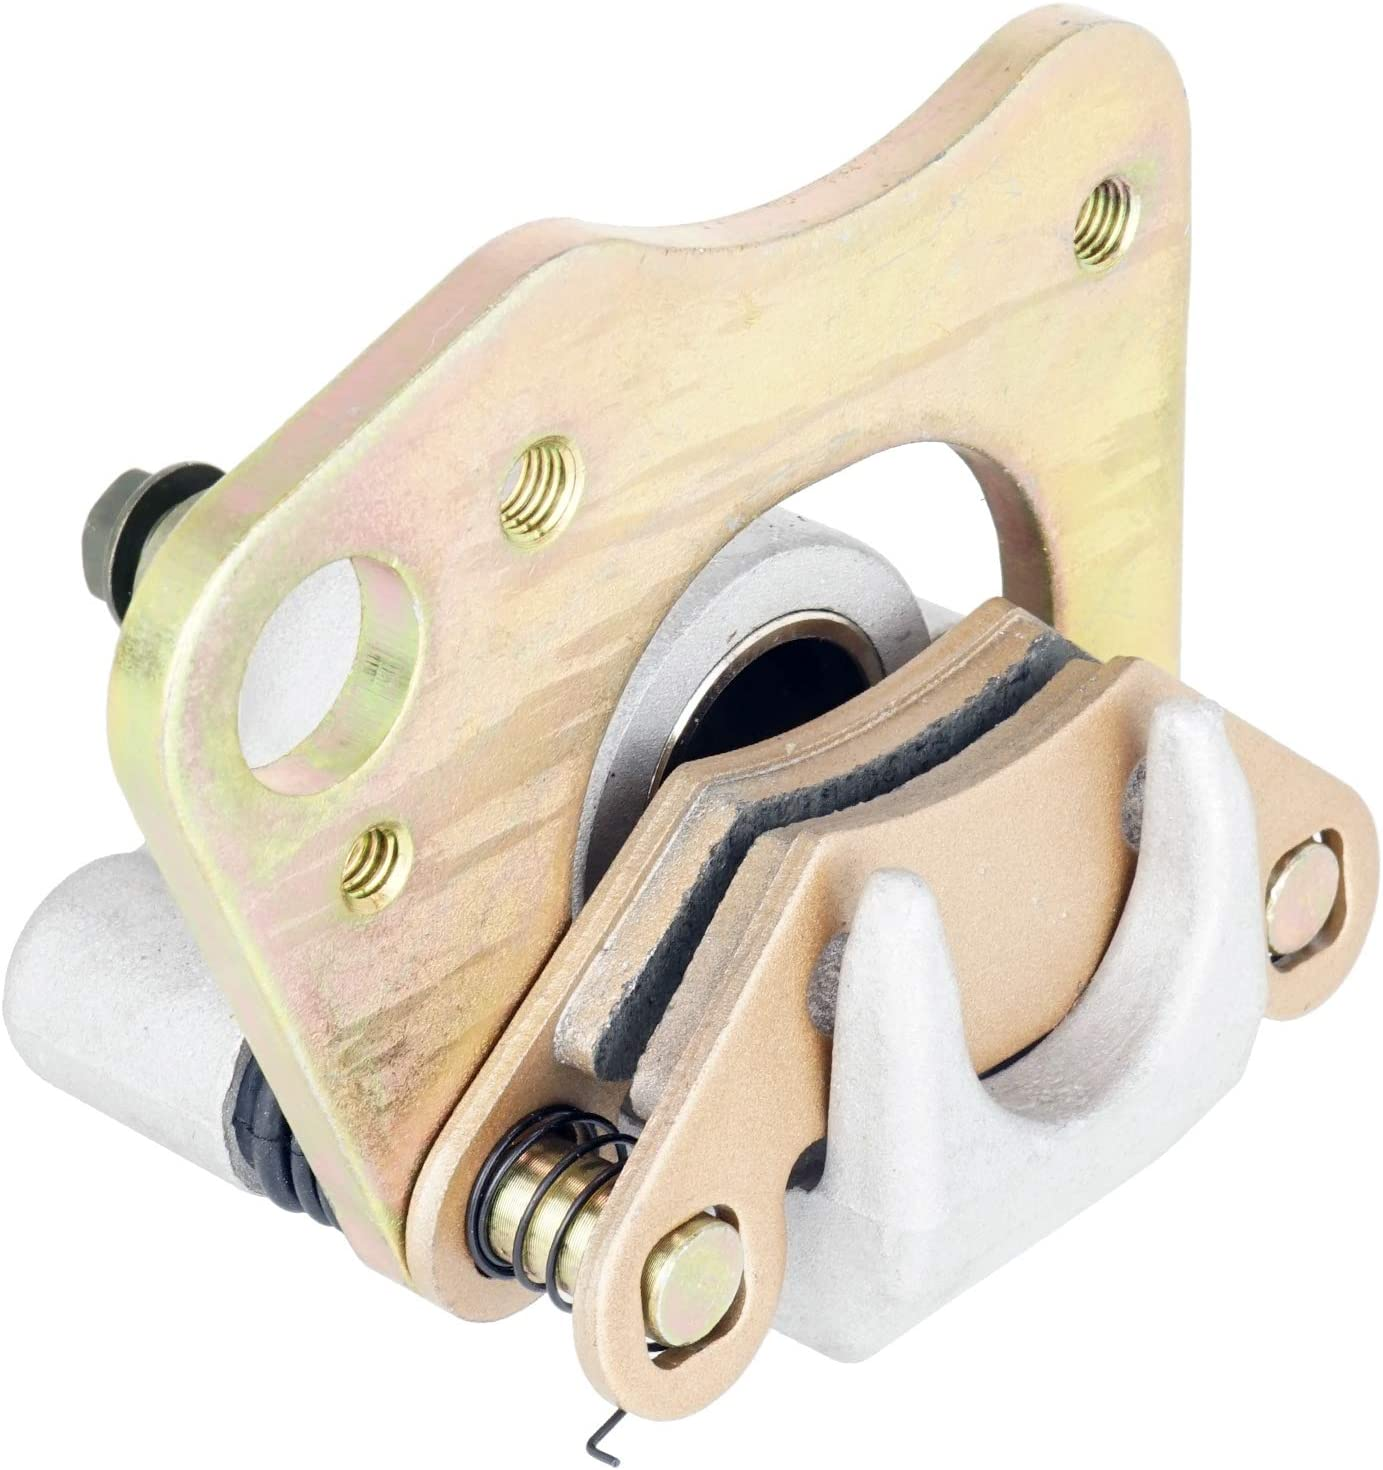 Caltric Front Left Brake Caliper W with Max 87% OFF Over item handling Compatible Polaris Pads